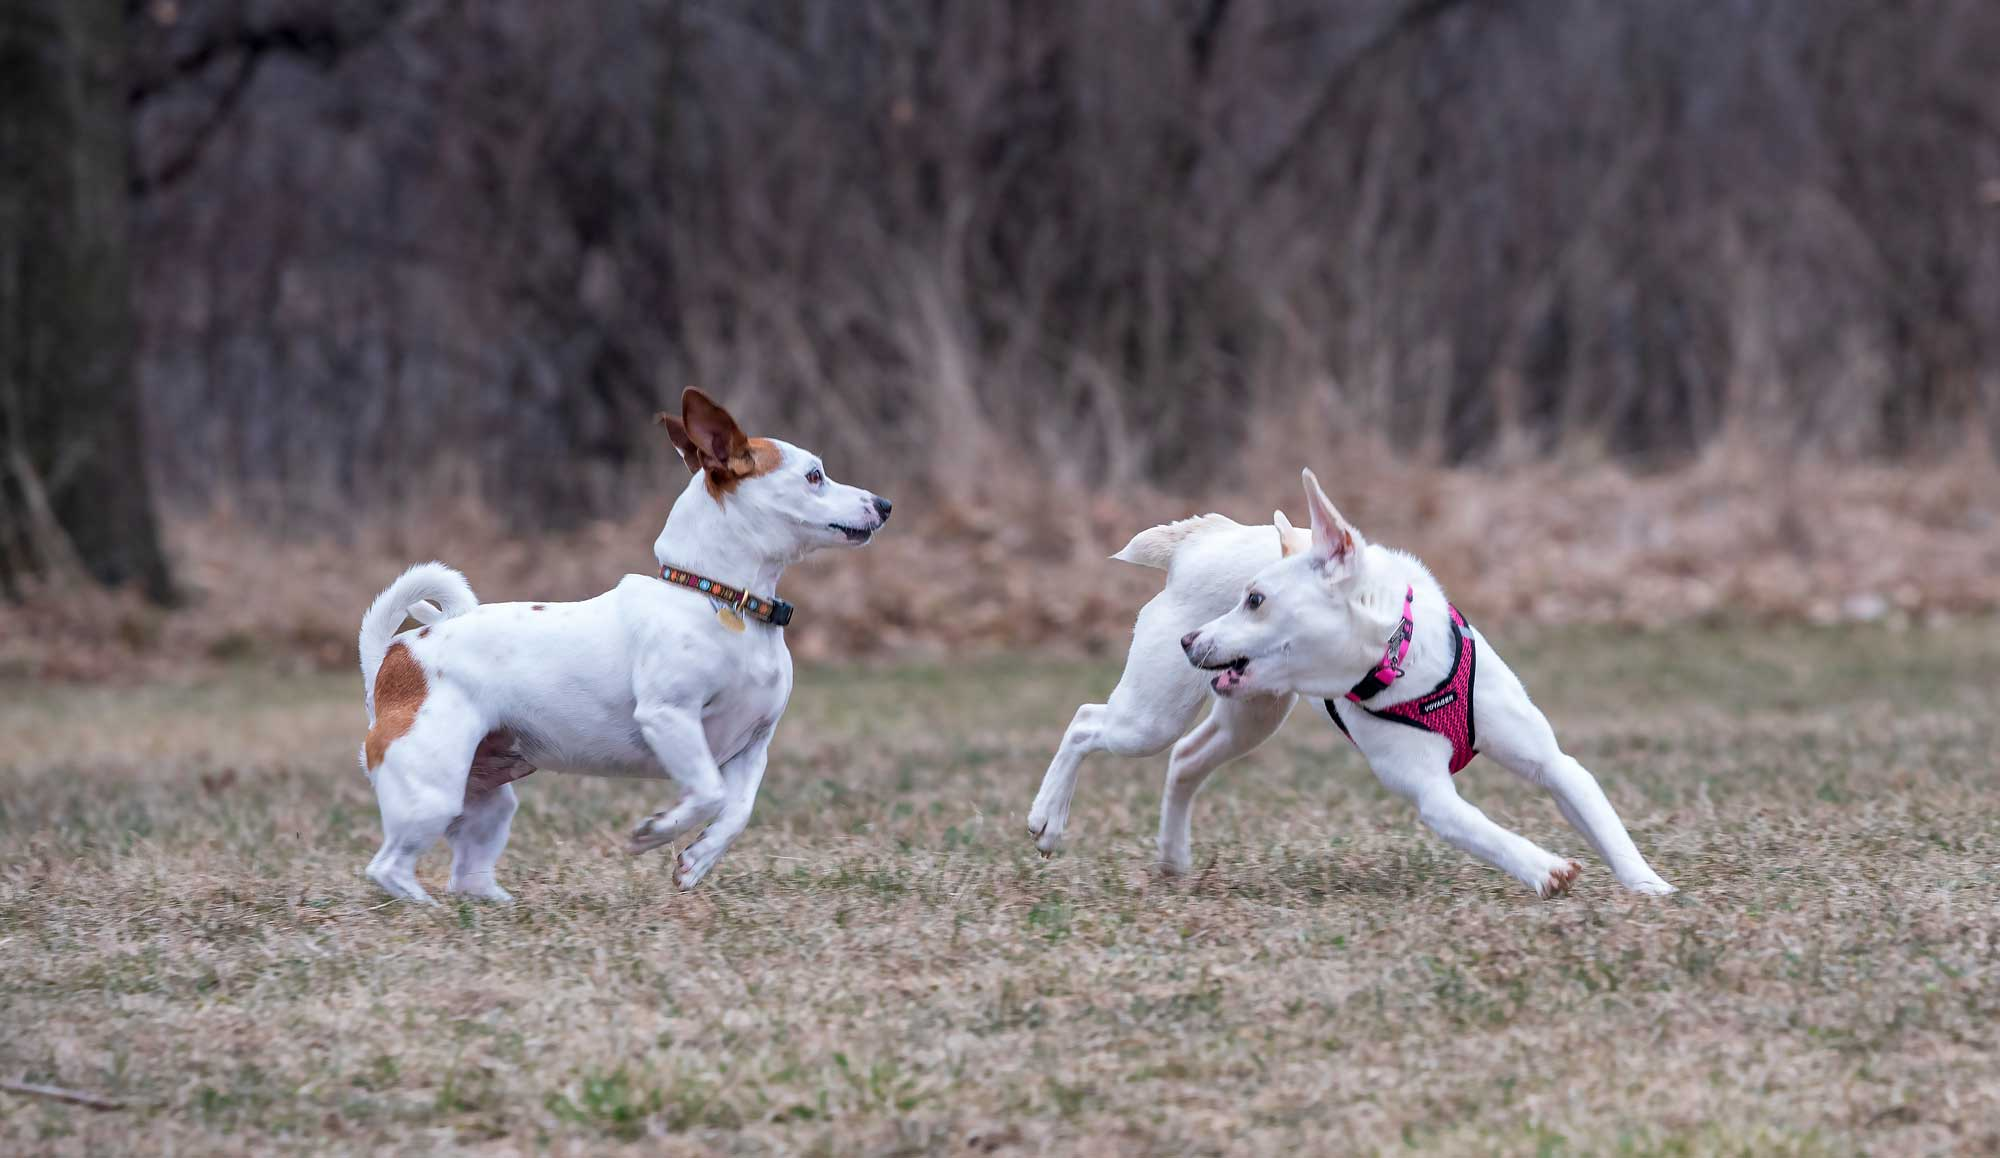 Photo for: Discounted Dog Park Permits Now On Sale